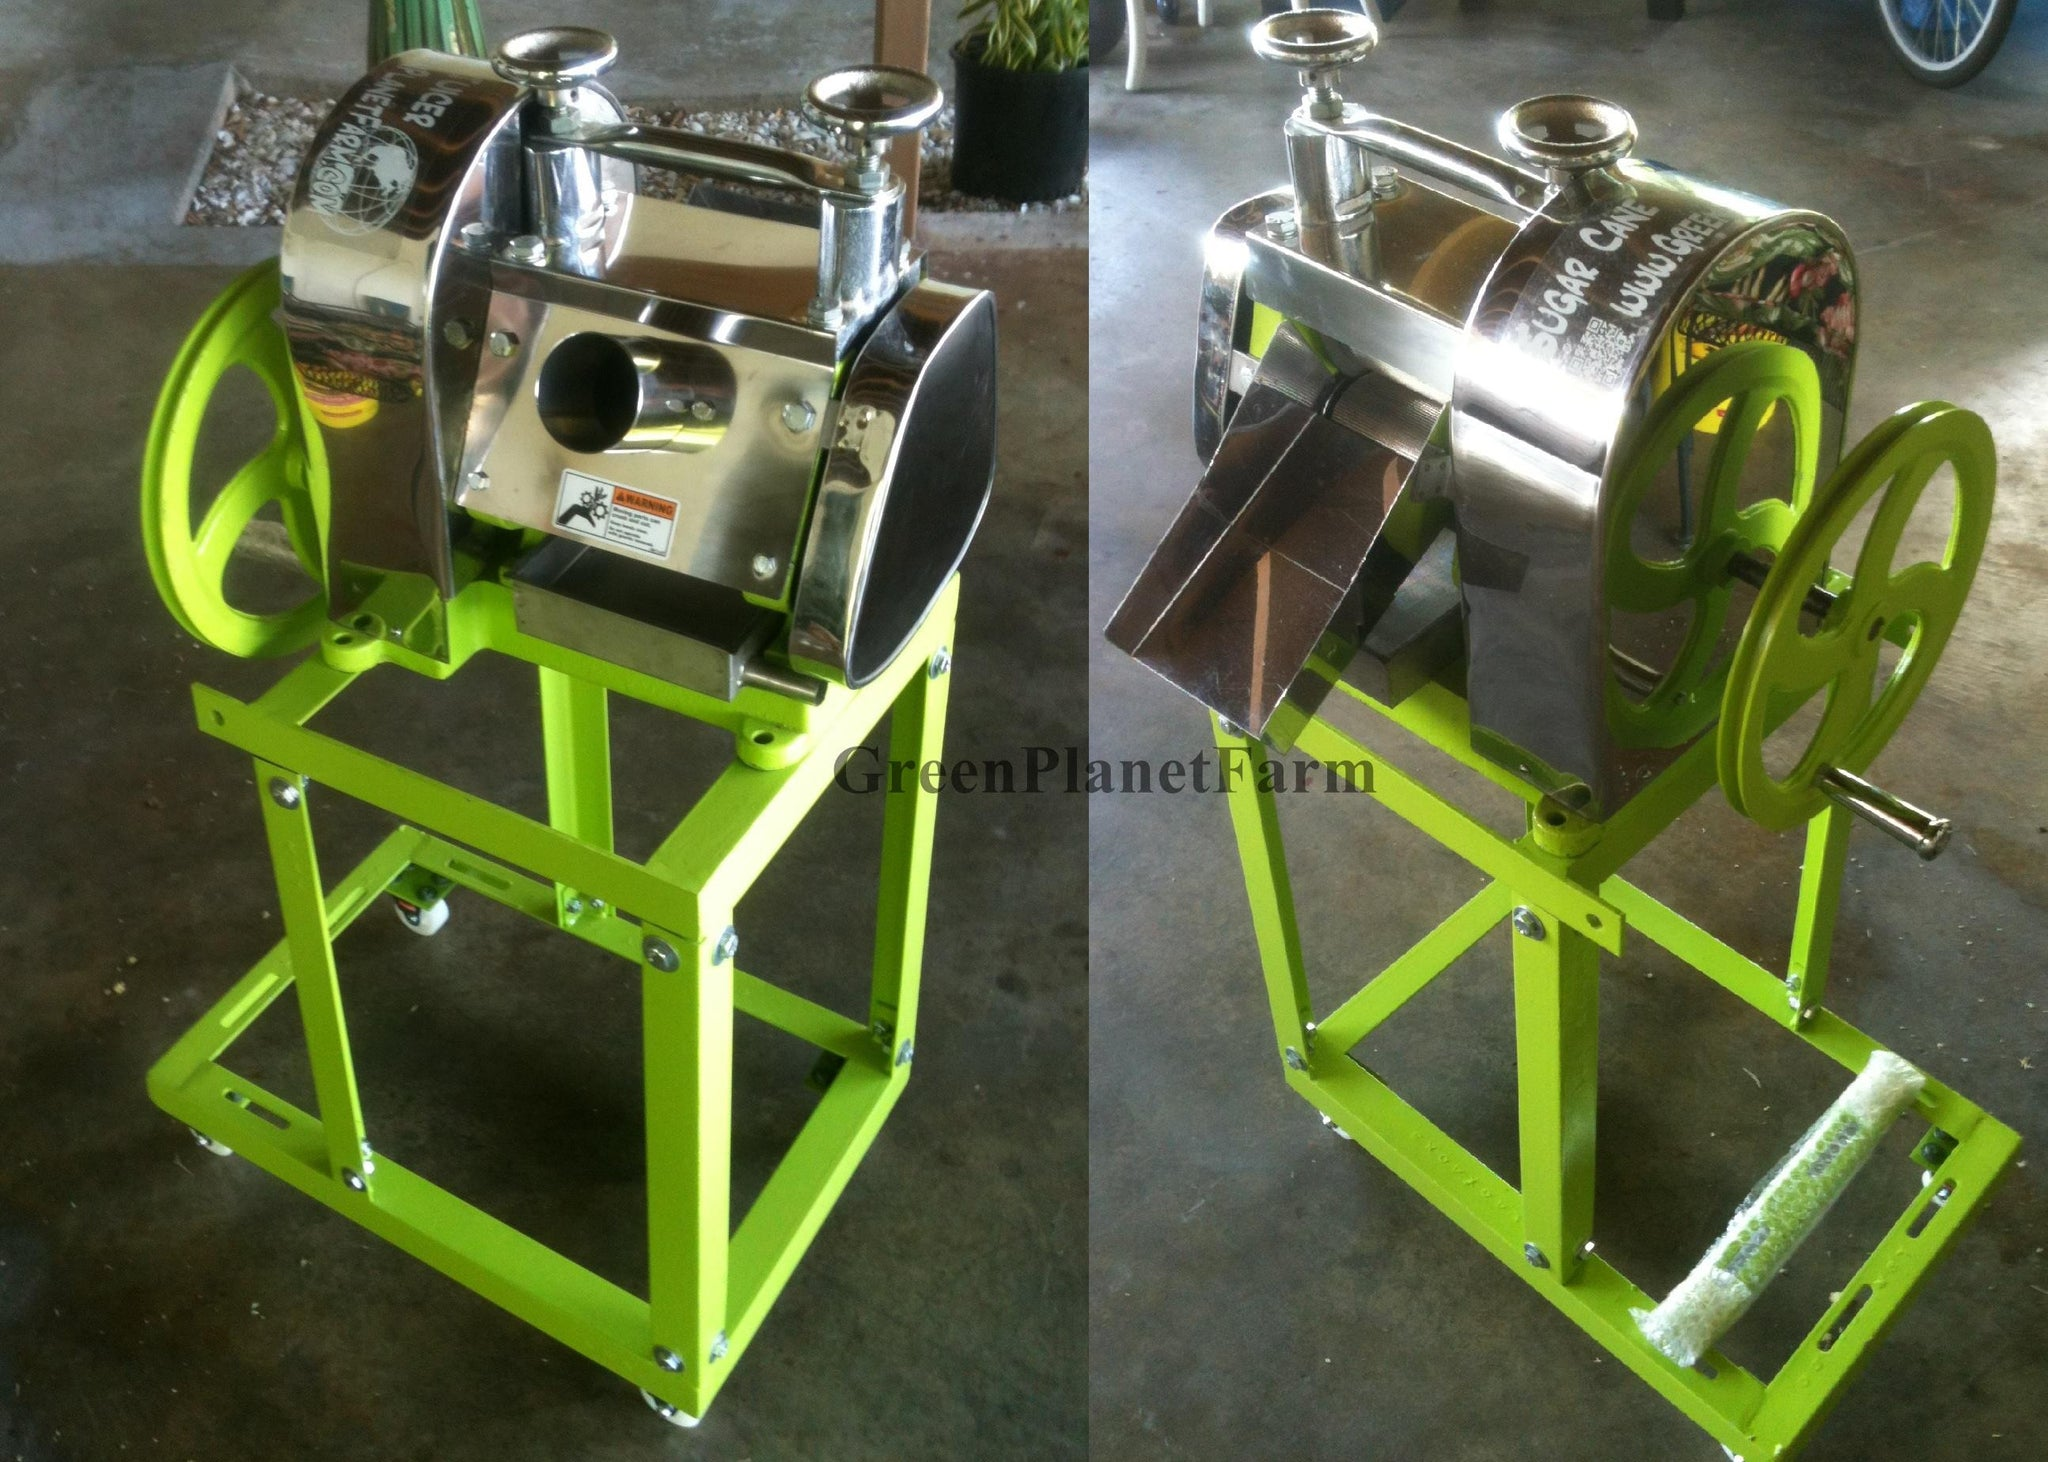 Sugar Cane juicer with cart